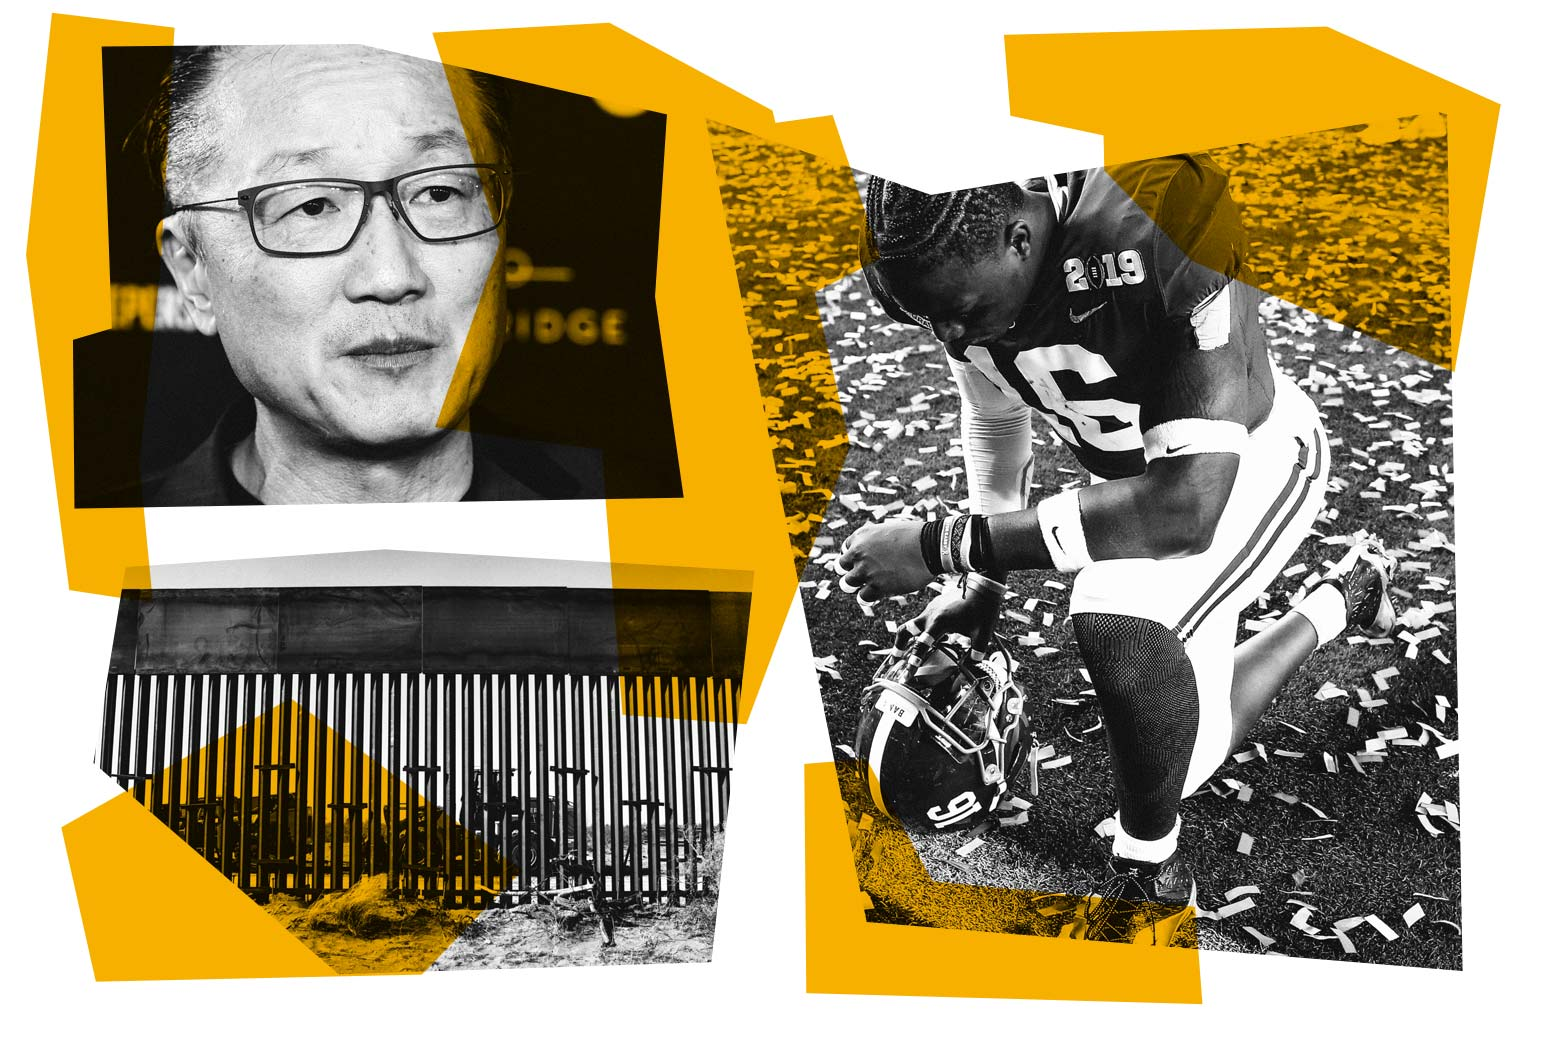 Slate News Quiz collage featuring Jim Yong Kim, an Alabama football player, and a border fence prototype.